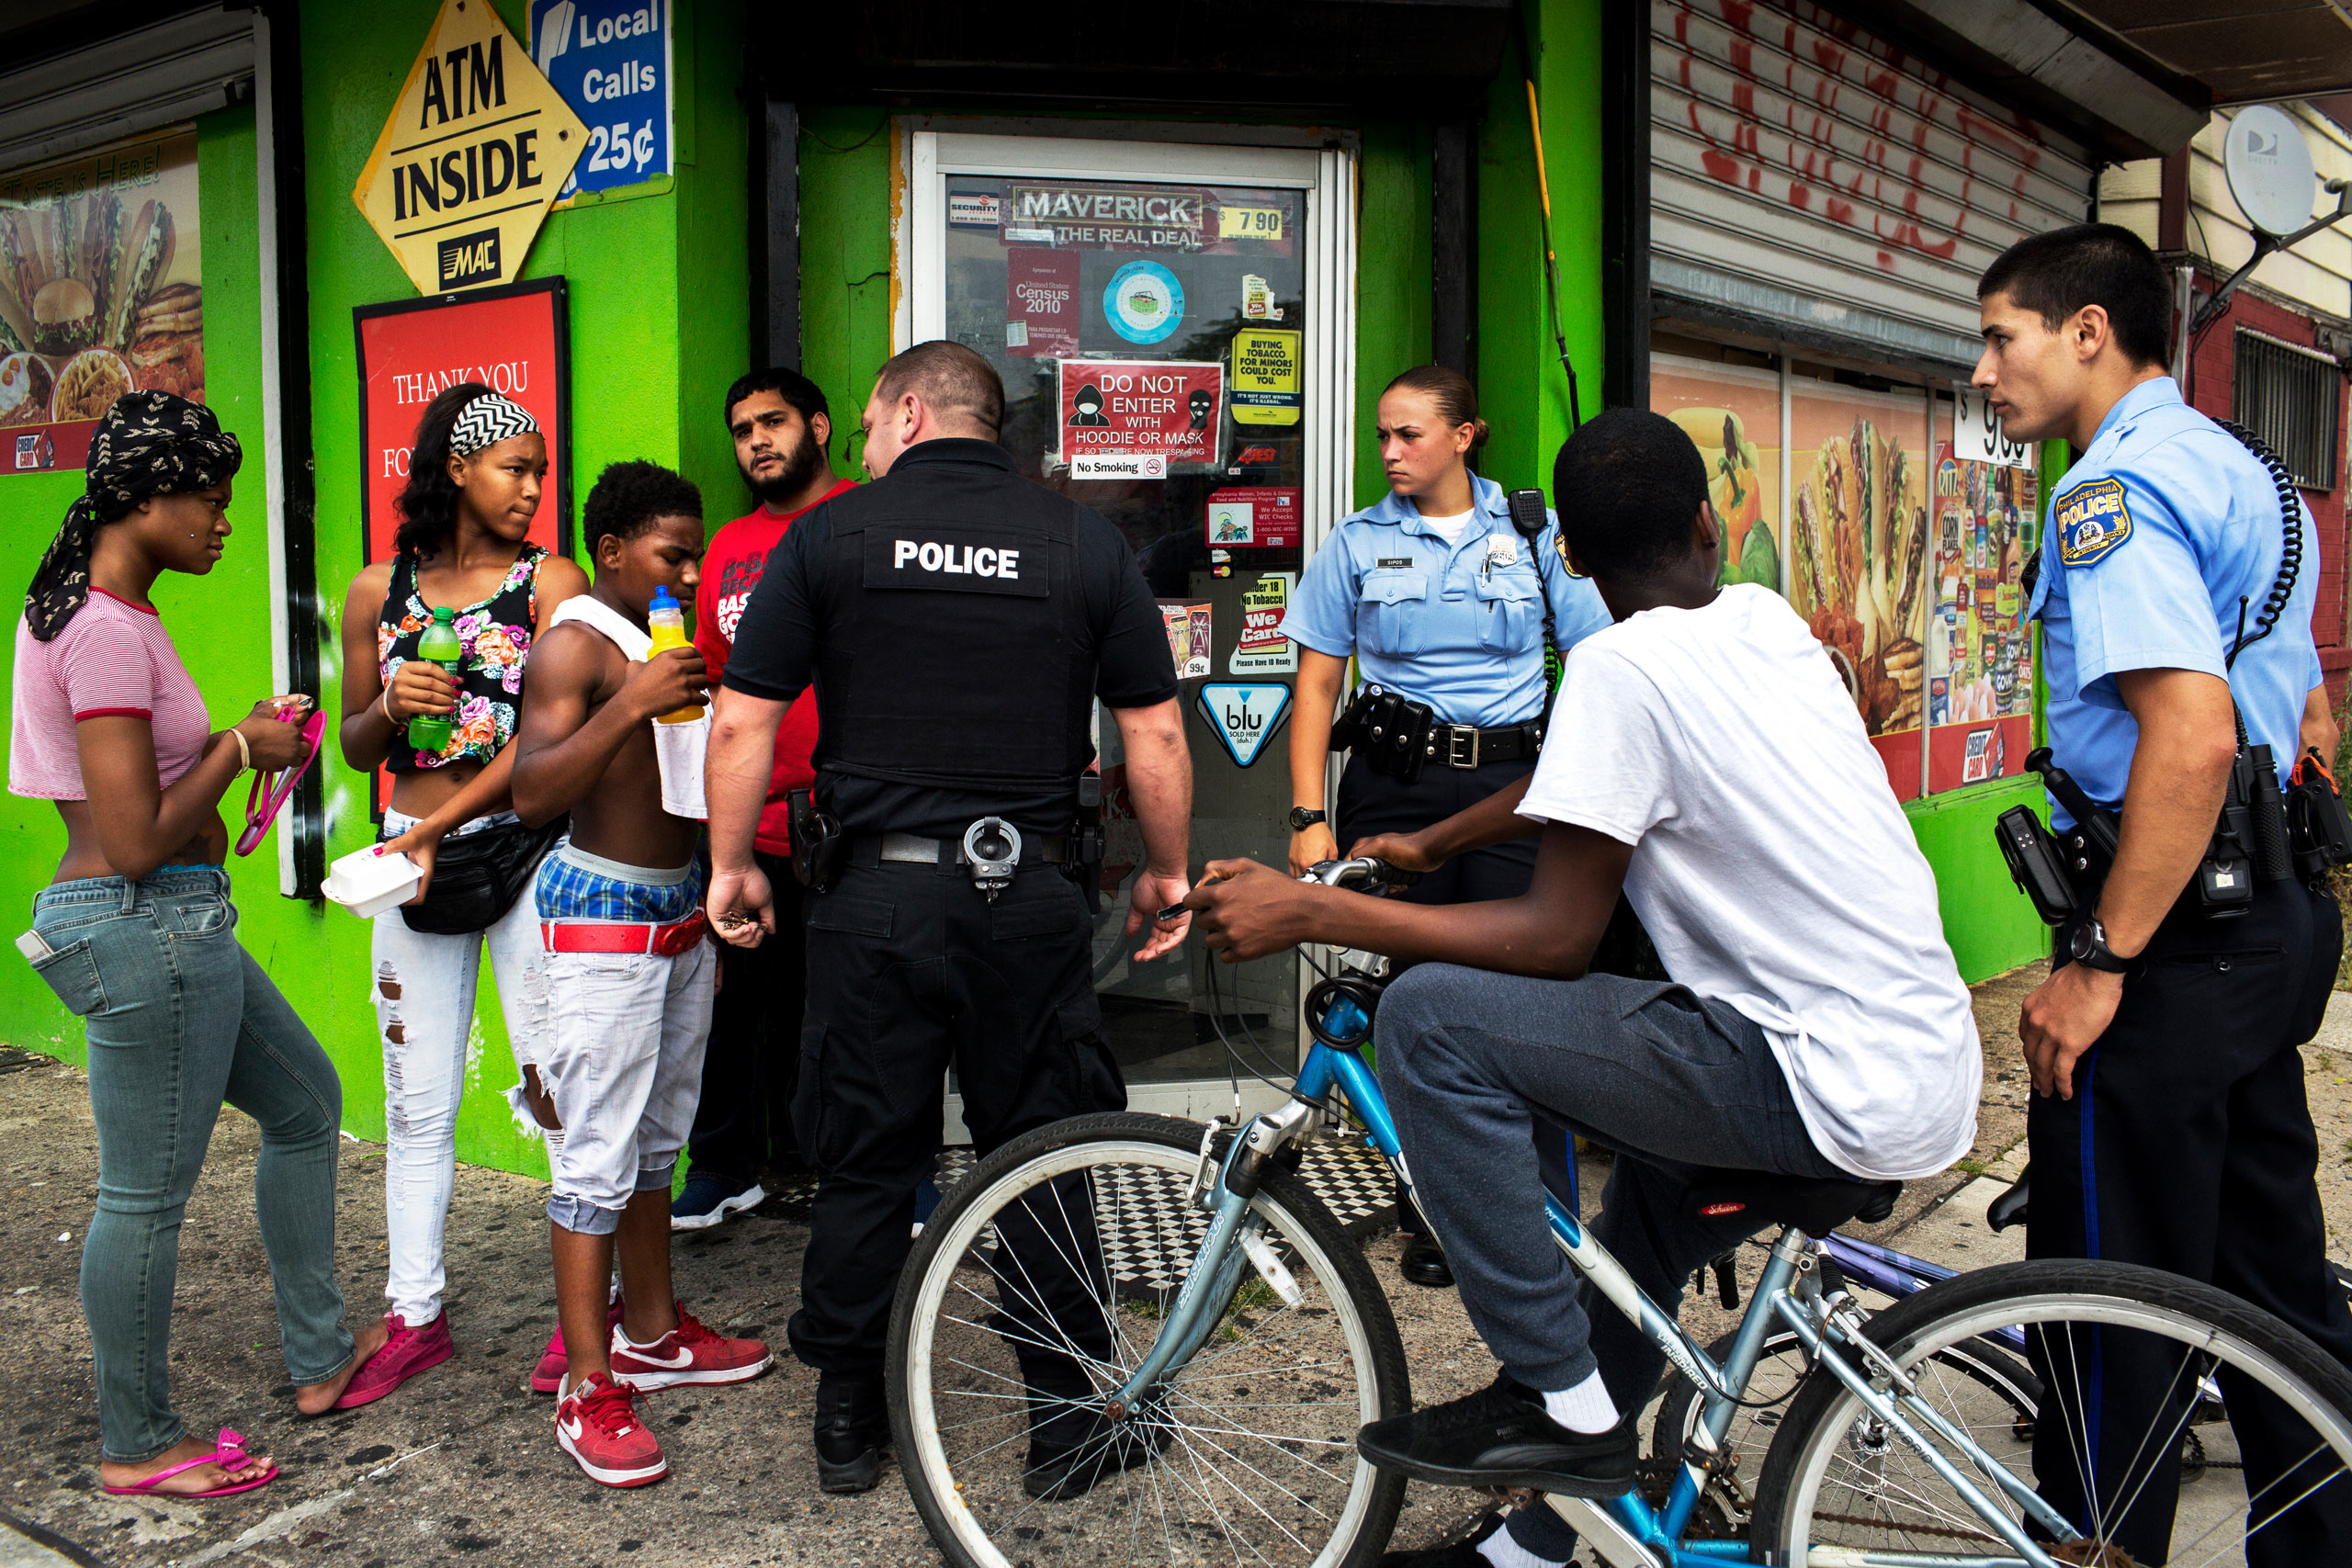 After a shooting nearby with reports of a suspect fleeing on a bicycle, officer Ryan Mundrick (center, black clothes) joins  foot beats  Ashley Sipos (center right) and Jonathan Dedos (right) in questioning a group of youths as they come out of a bodega. Dispatch had sent out information that there was a black male suspect on a bicycle, so police fanned out looking for people of that description, including many of the youths in the neighborhood. After a brief interaction the police and youth went their separate ways without incident.                                July 28, 2015. Philadelphia, Pa.